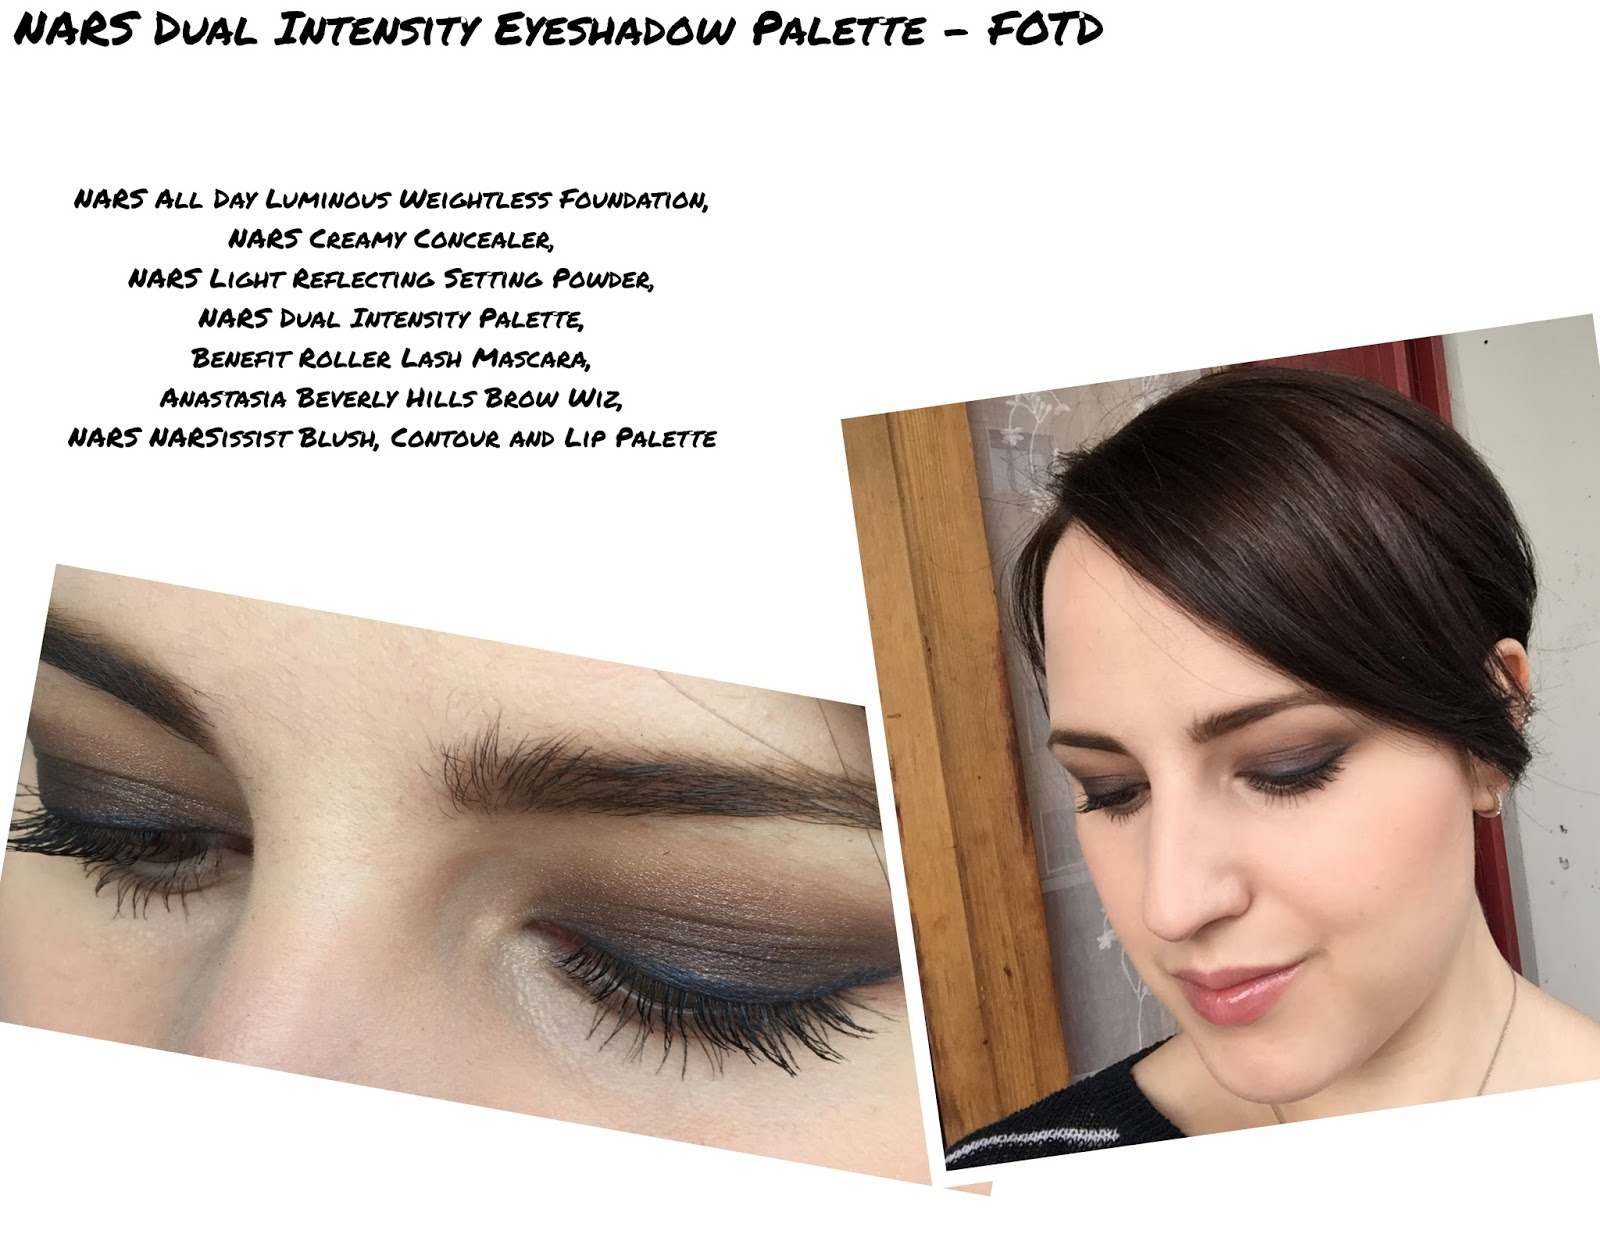 NARS Dual Intensity Eyeshadow Palette Look